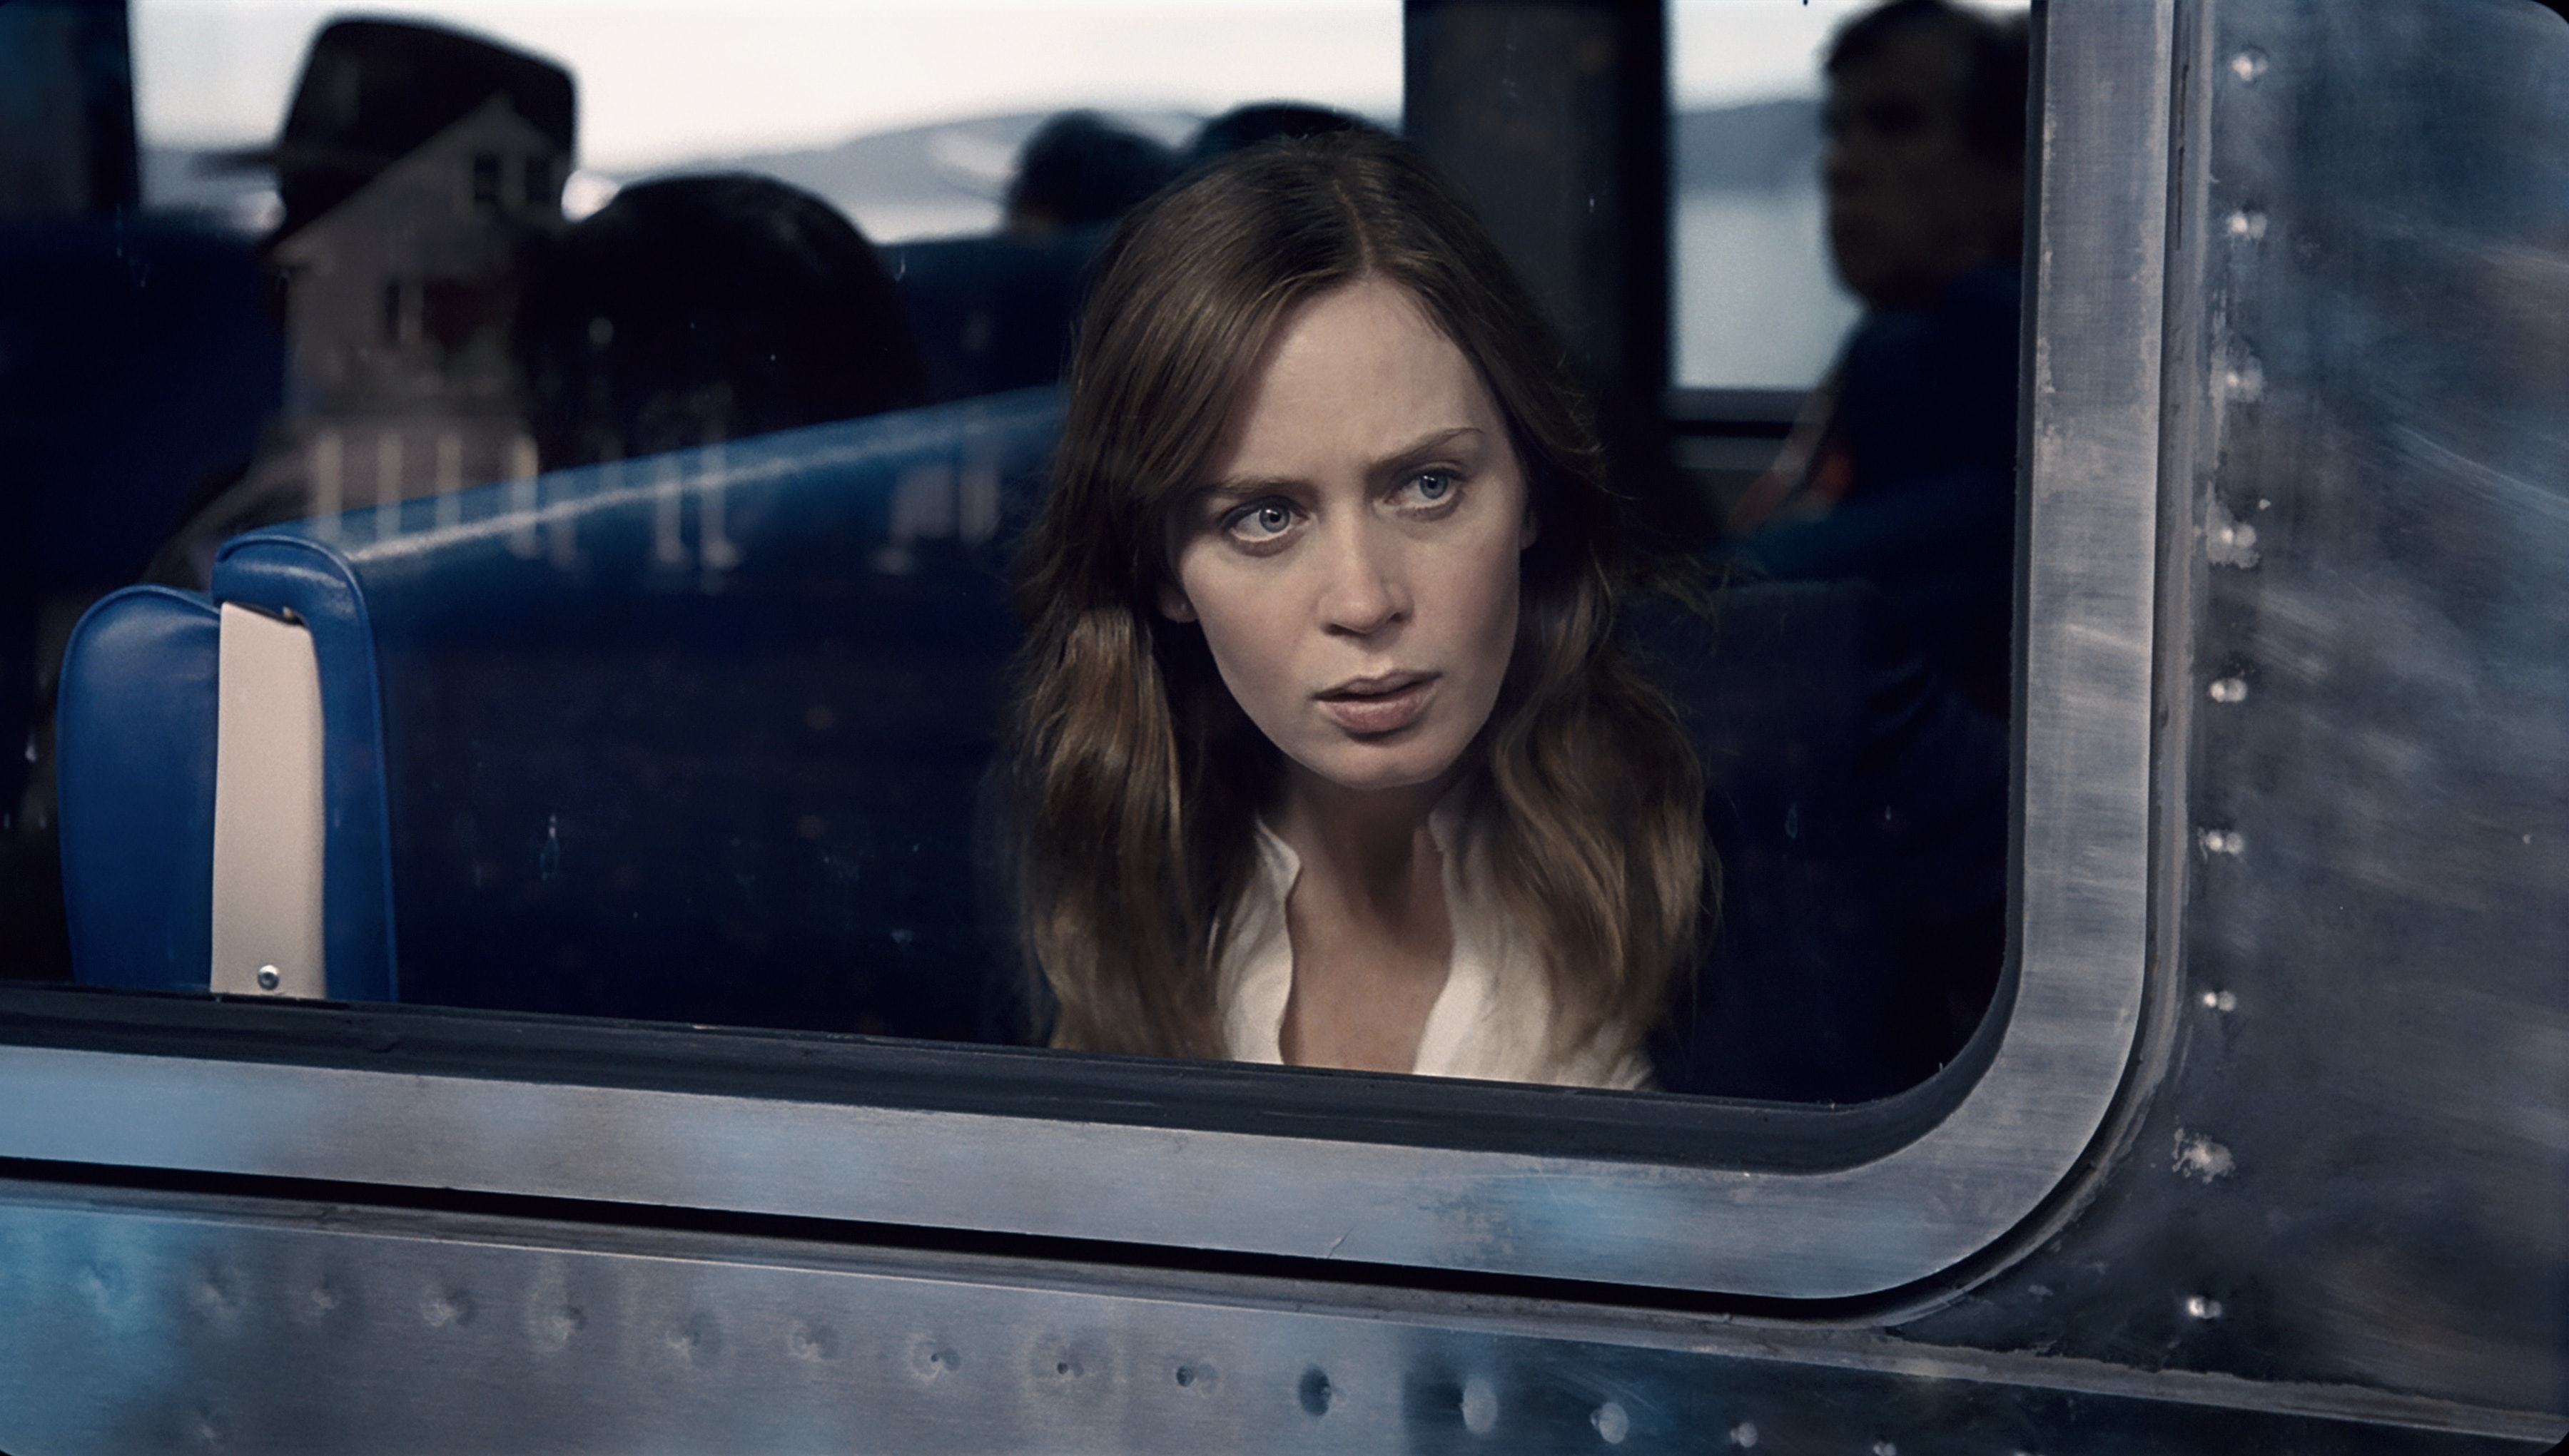 The Girl on the Train https://www.bustle.com/